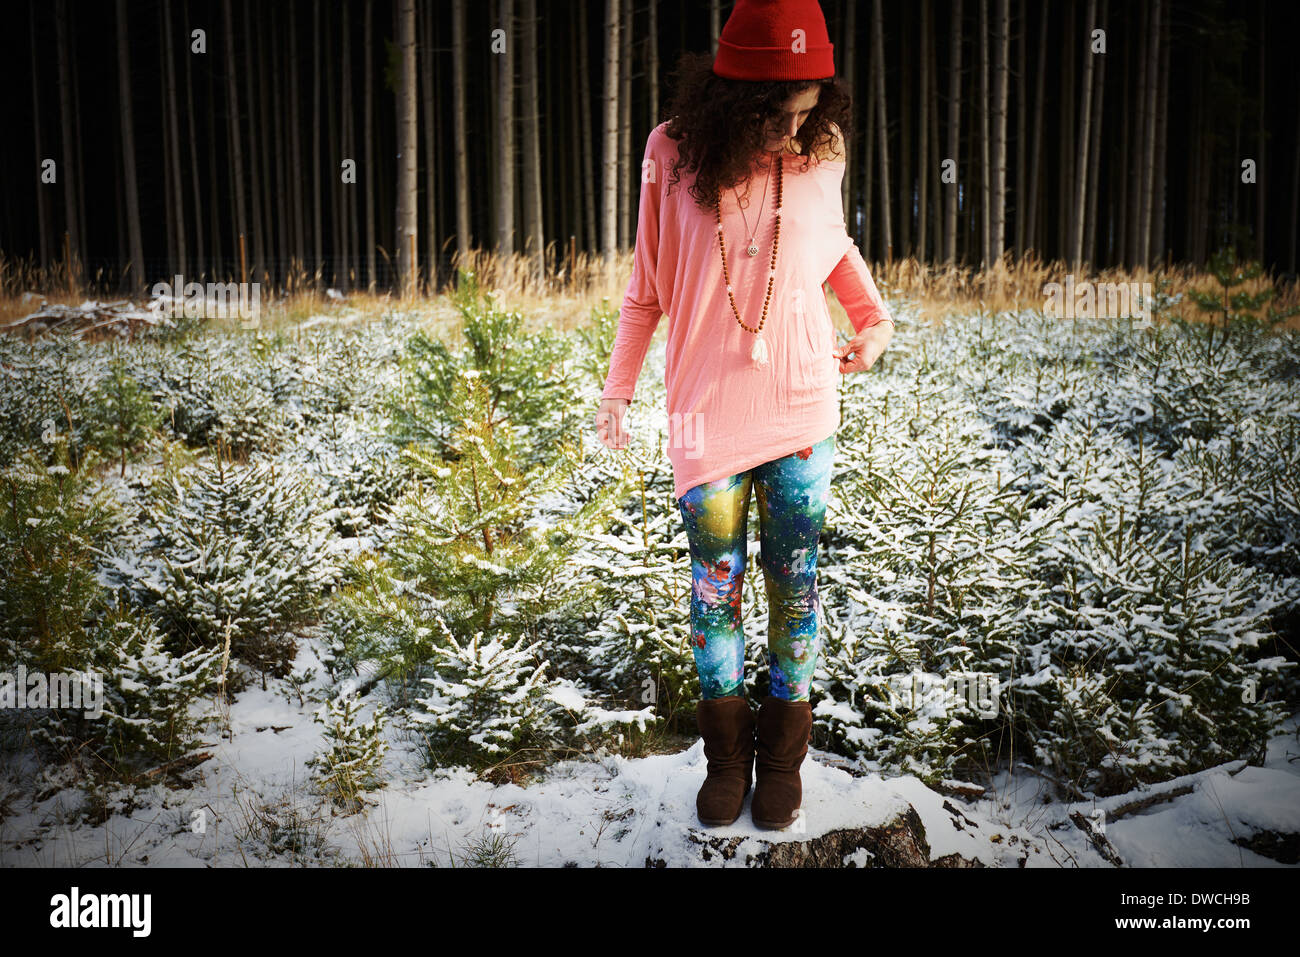 Mid adult woman in hat, standing on snow covered ground - Stock Image